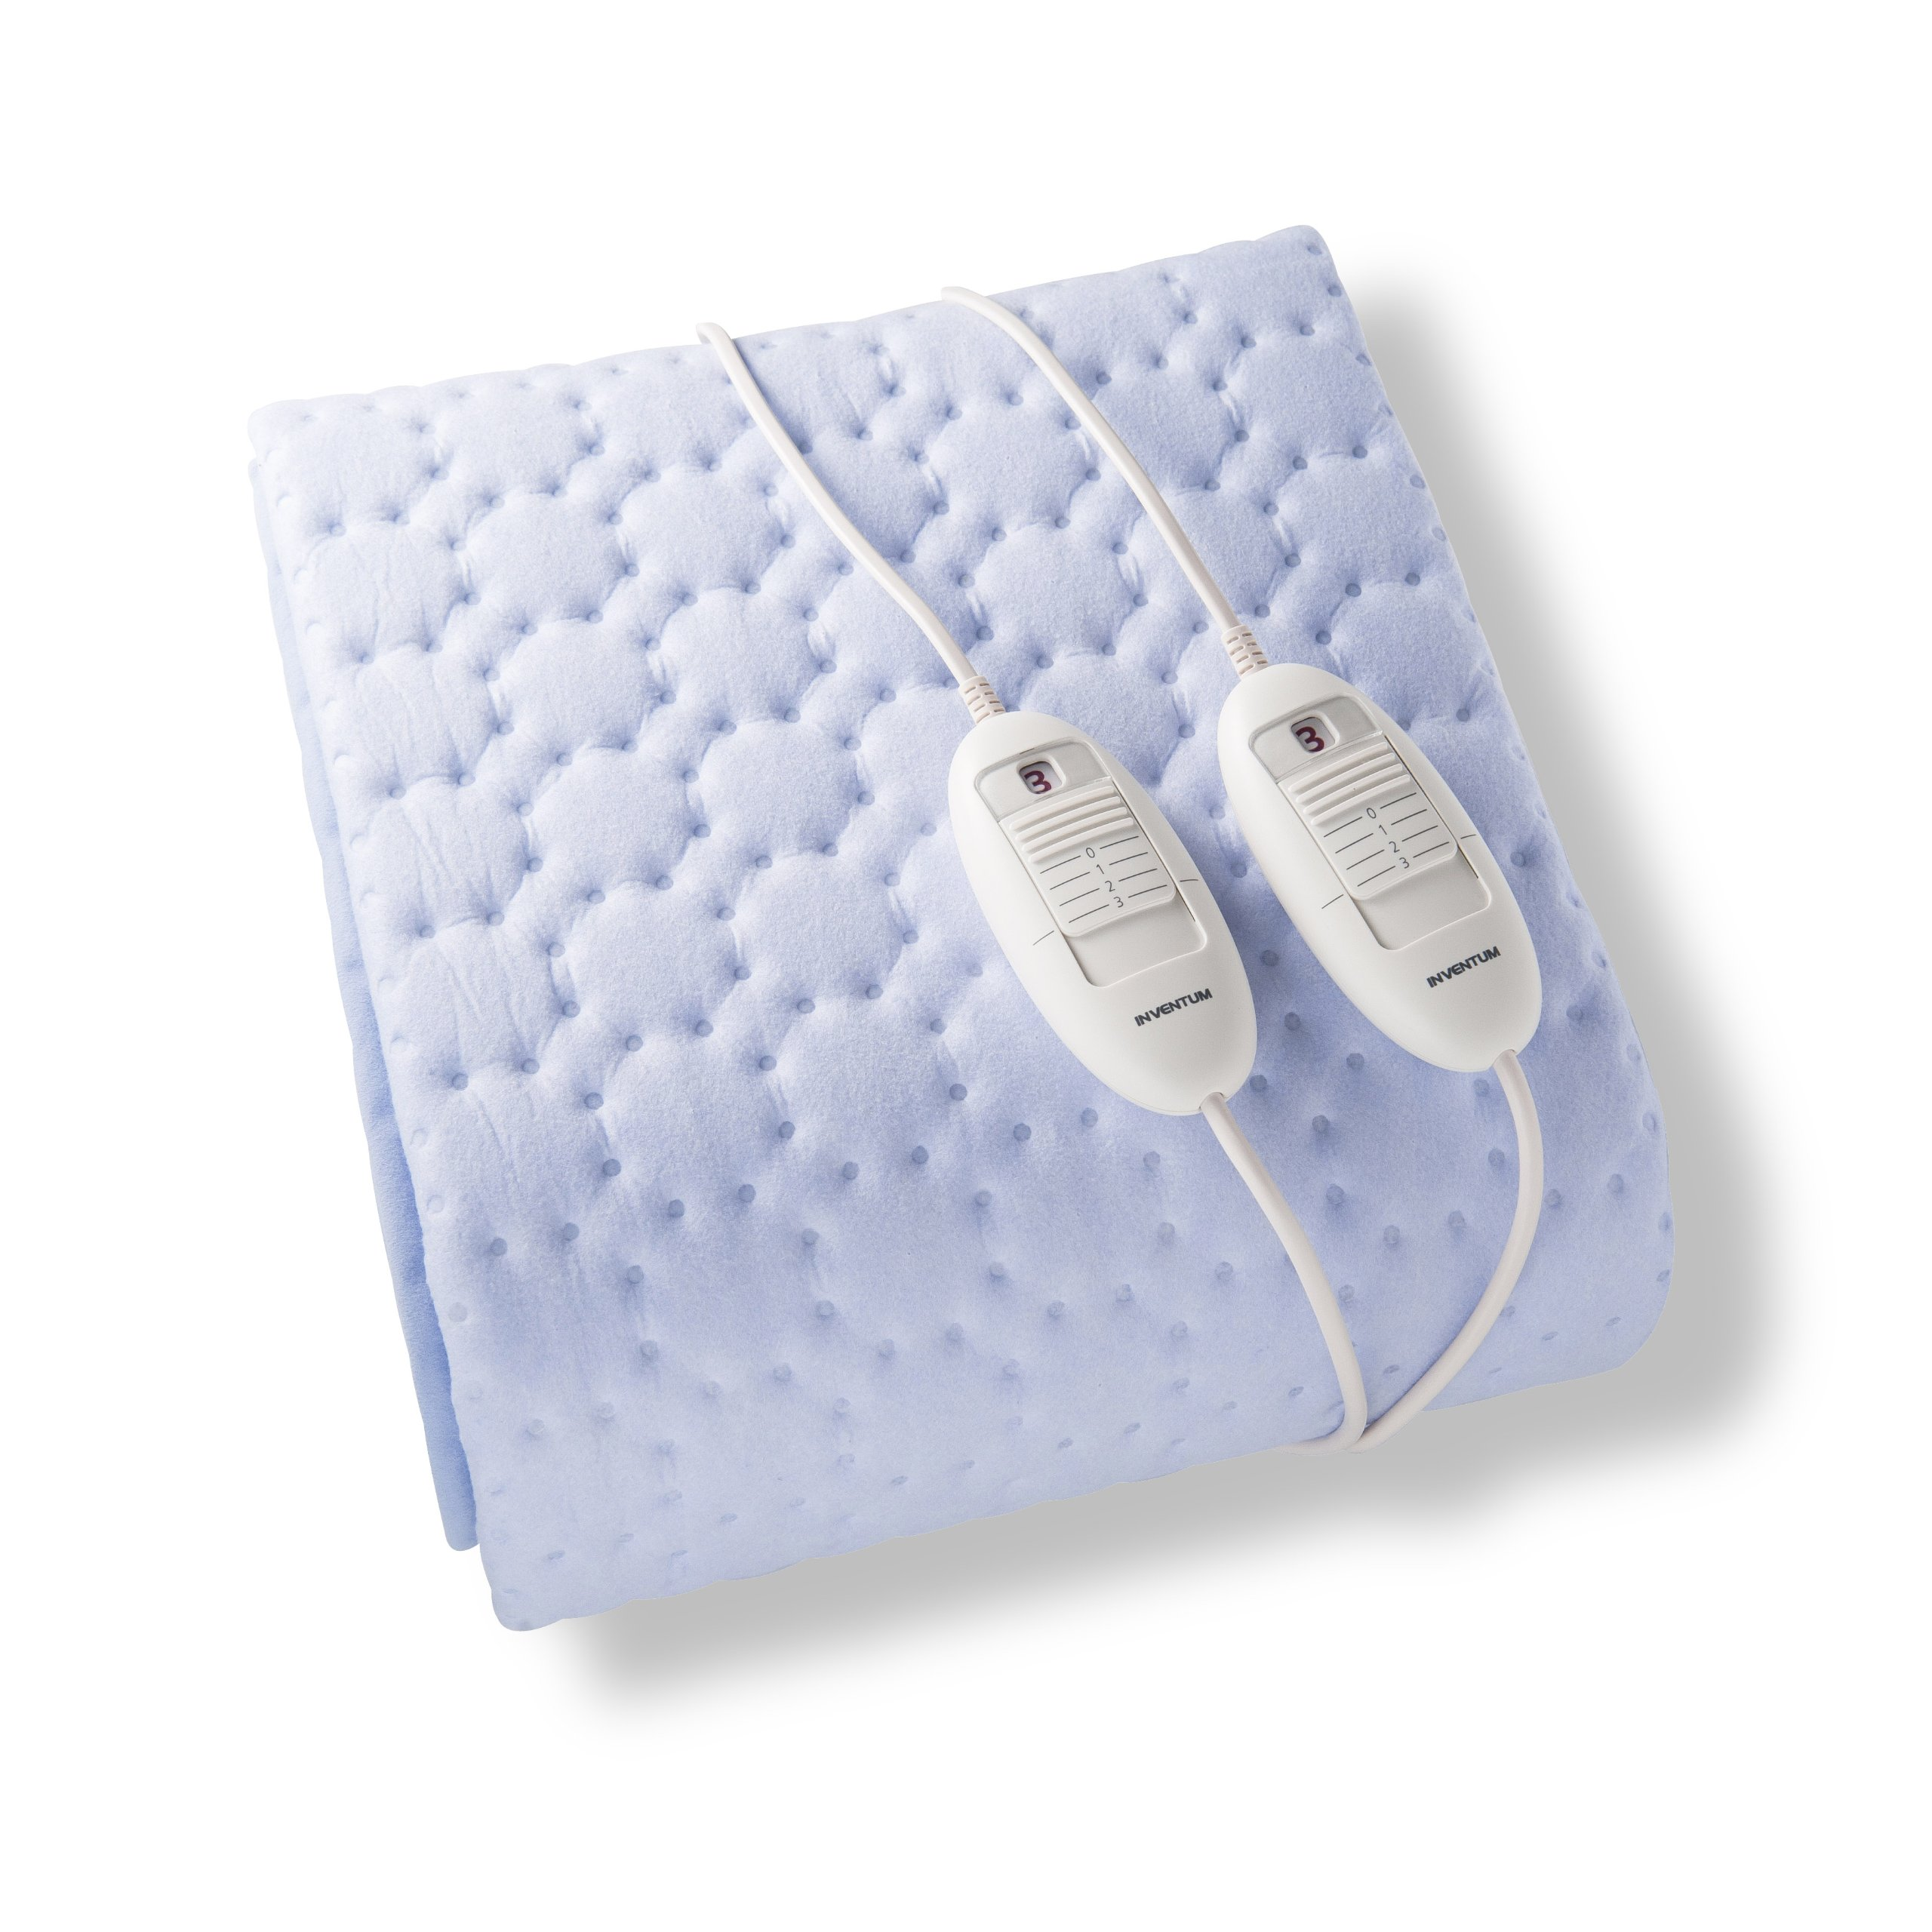 Inventum HN236i - electric blankets/pillows (Fleece, Öko-Tex: 100)